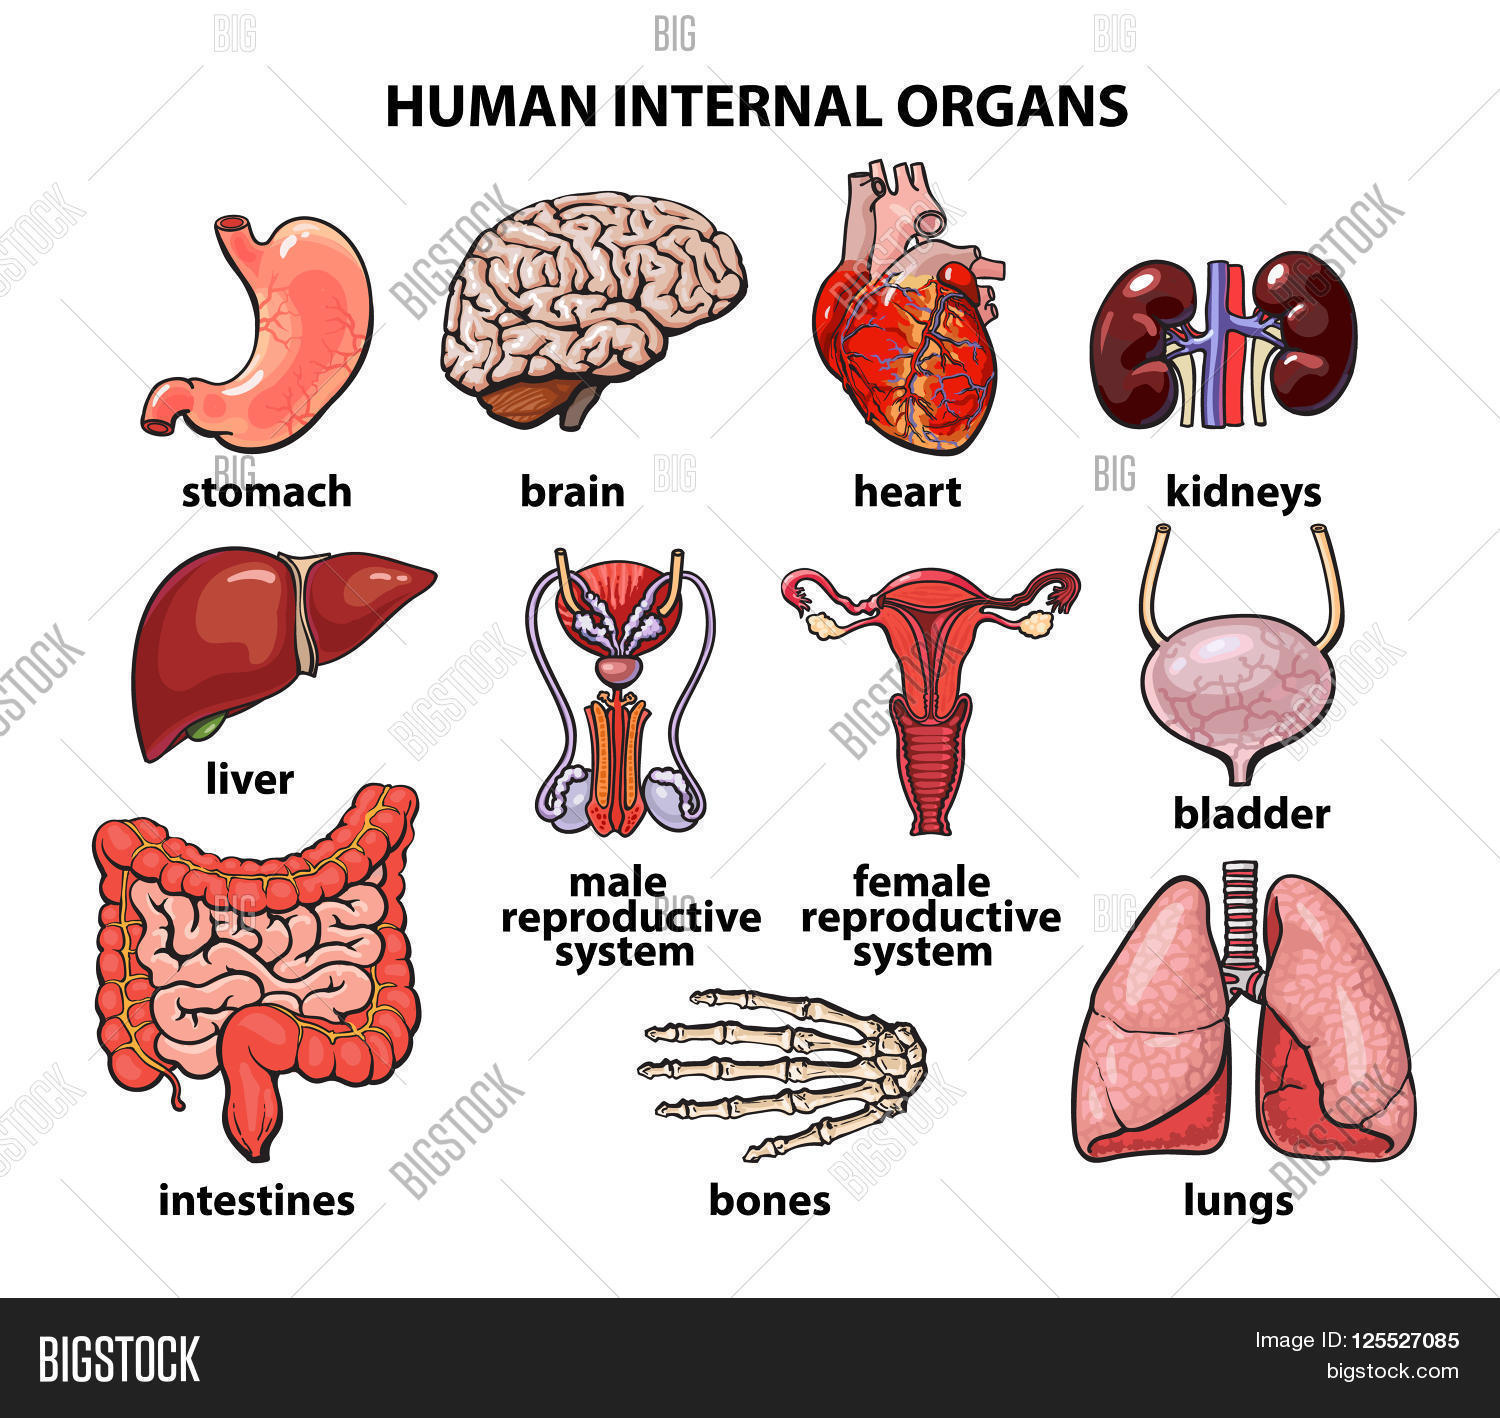 Human Organs Internal Organs Set Image Amp Photo